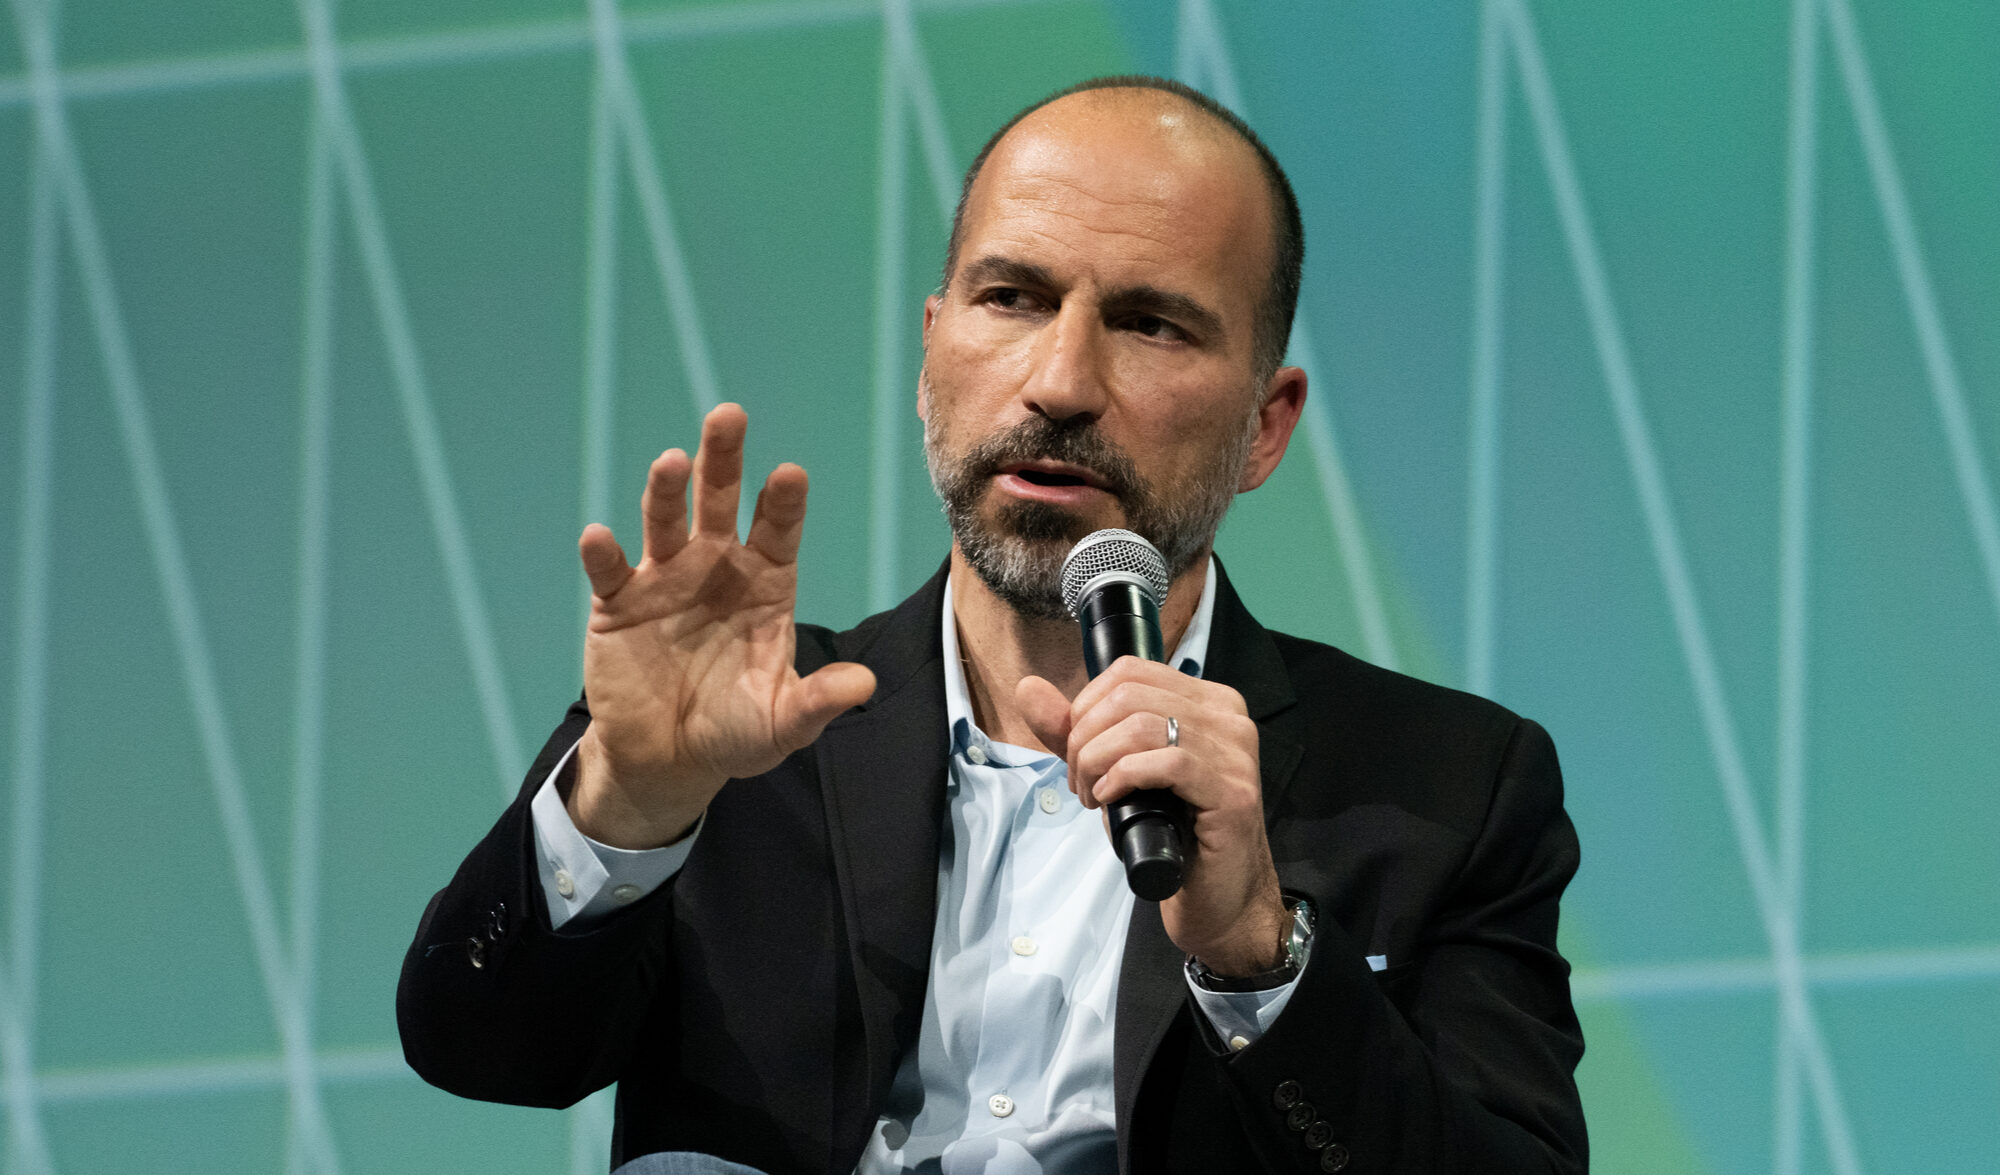 Uber will consider accepting bitcoin, says CEO Dara Khosrowshahi